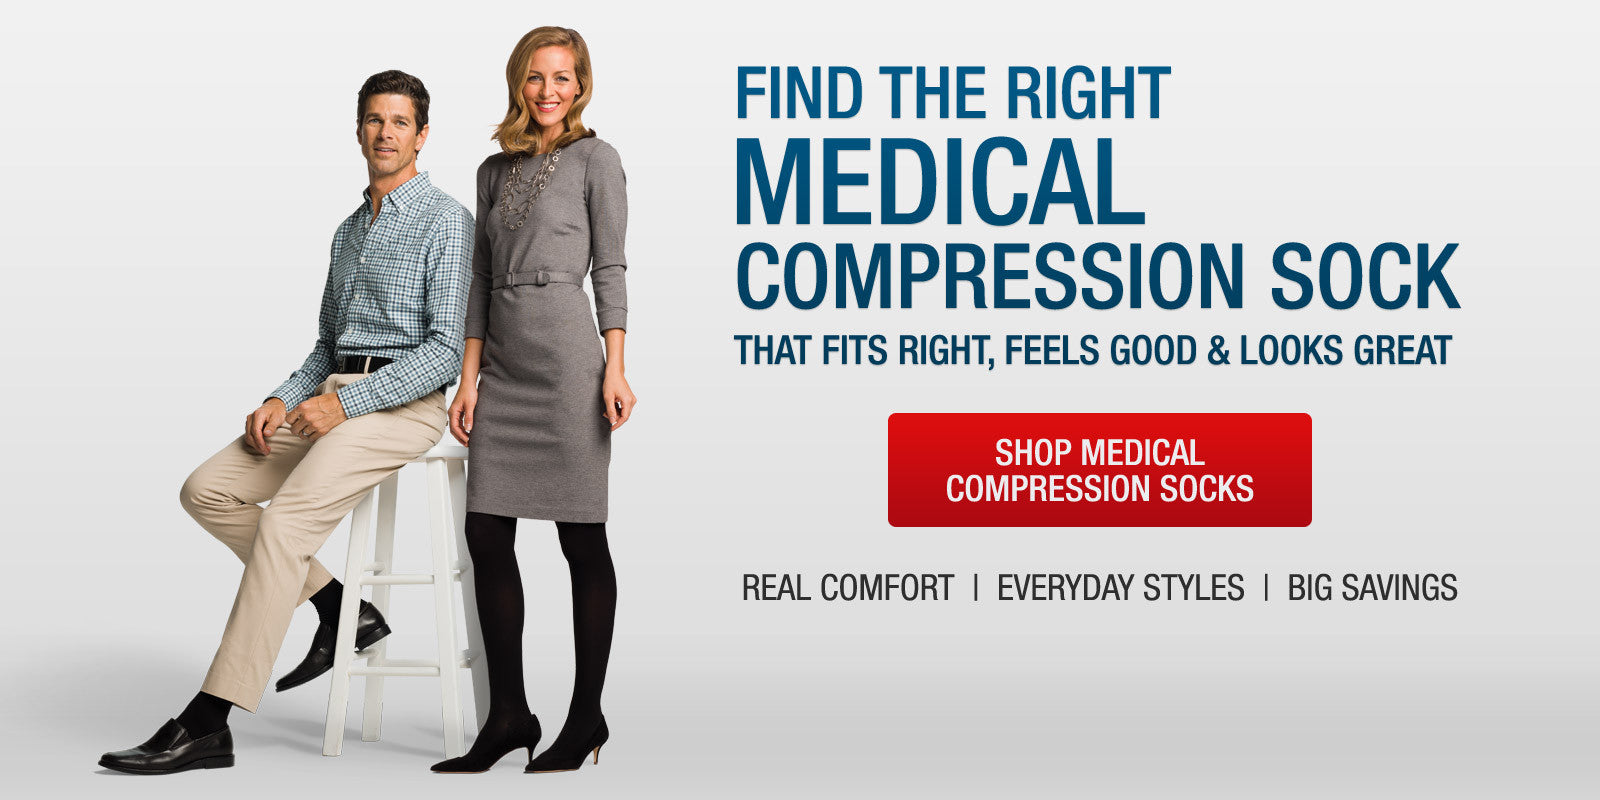 Find the right Medical Compression Socks